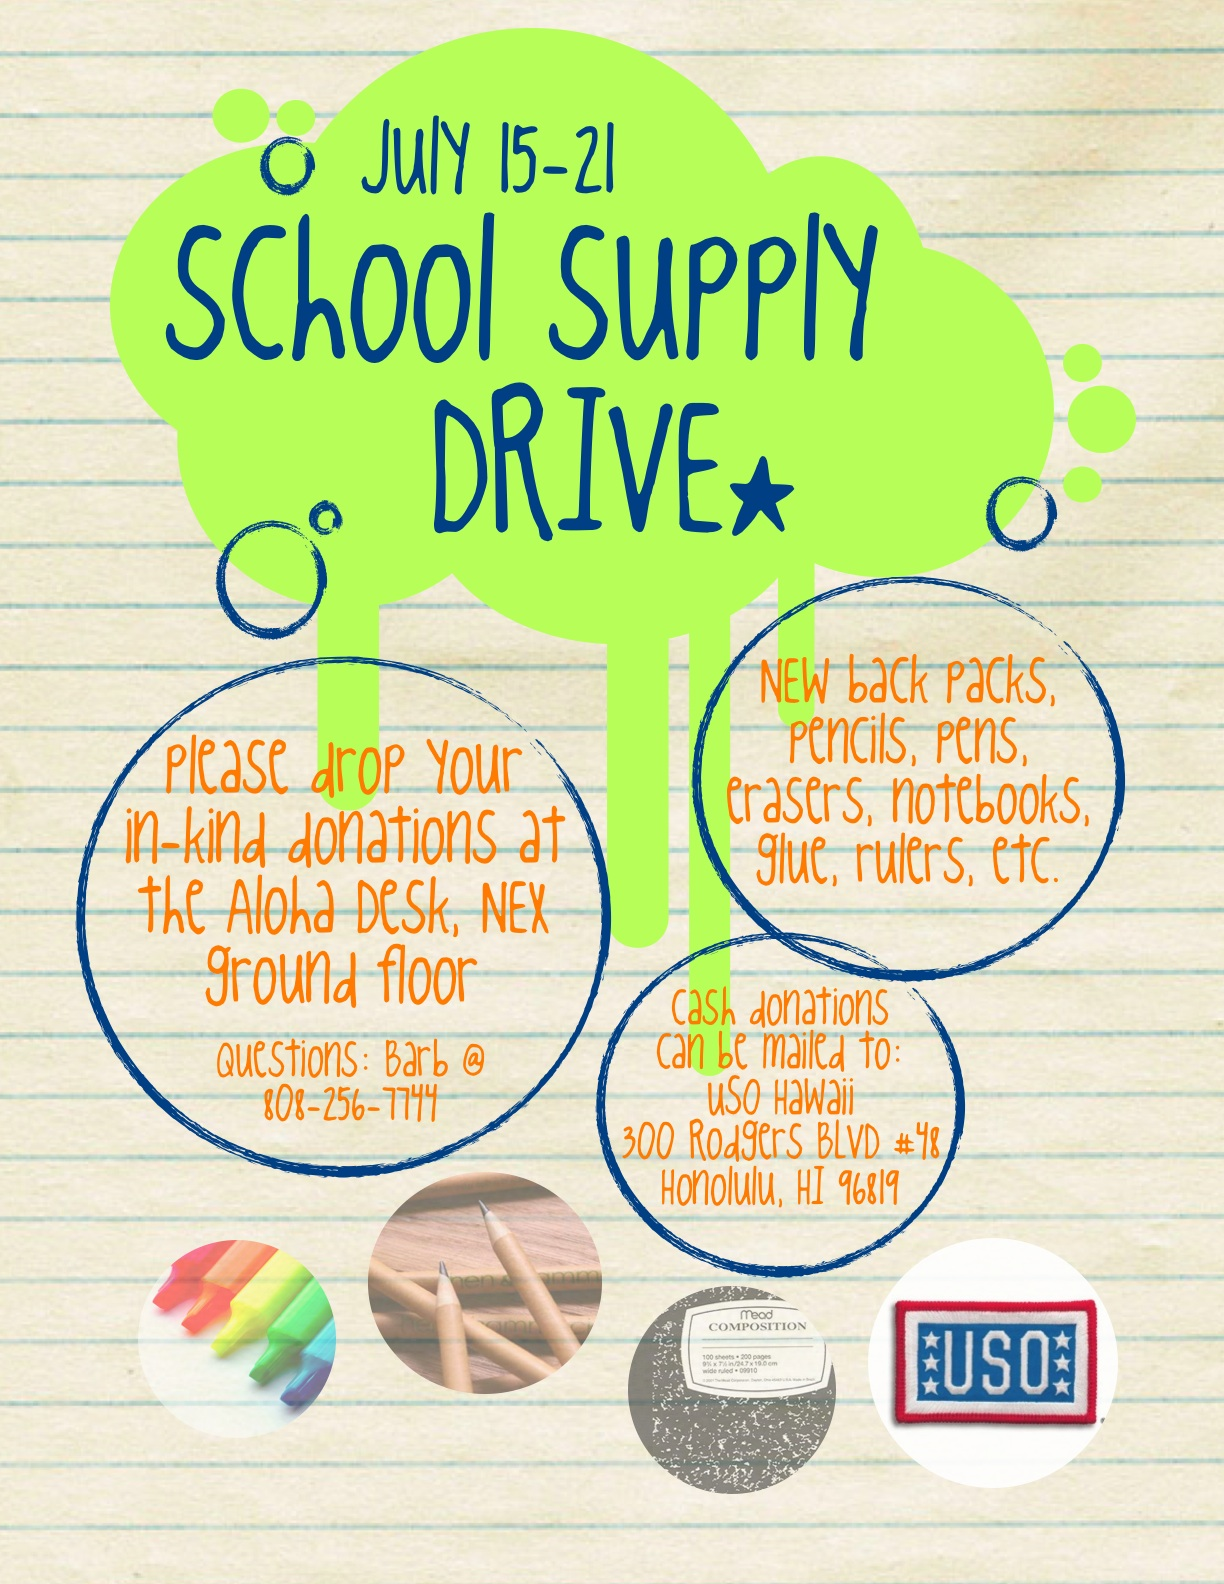 Help Support USO Hawaii's Back-To-School Program